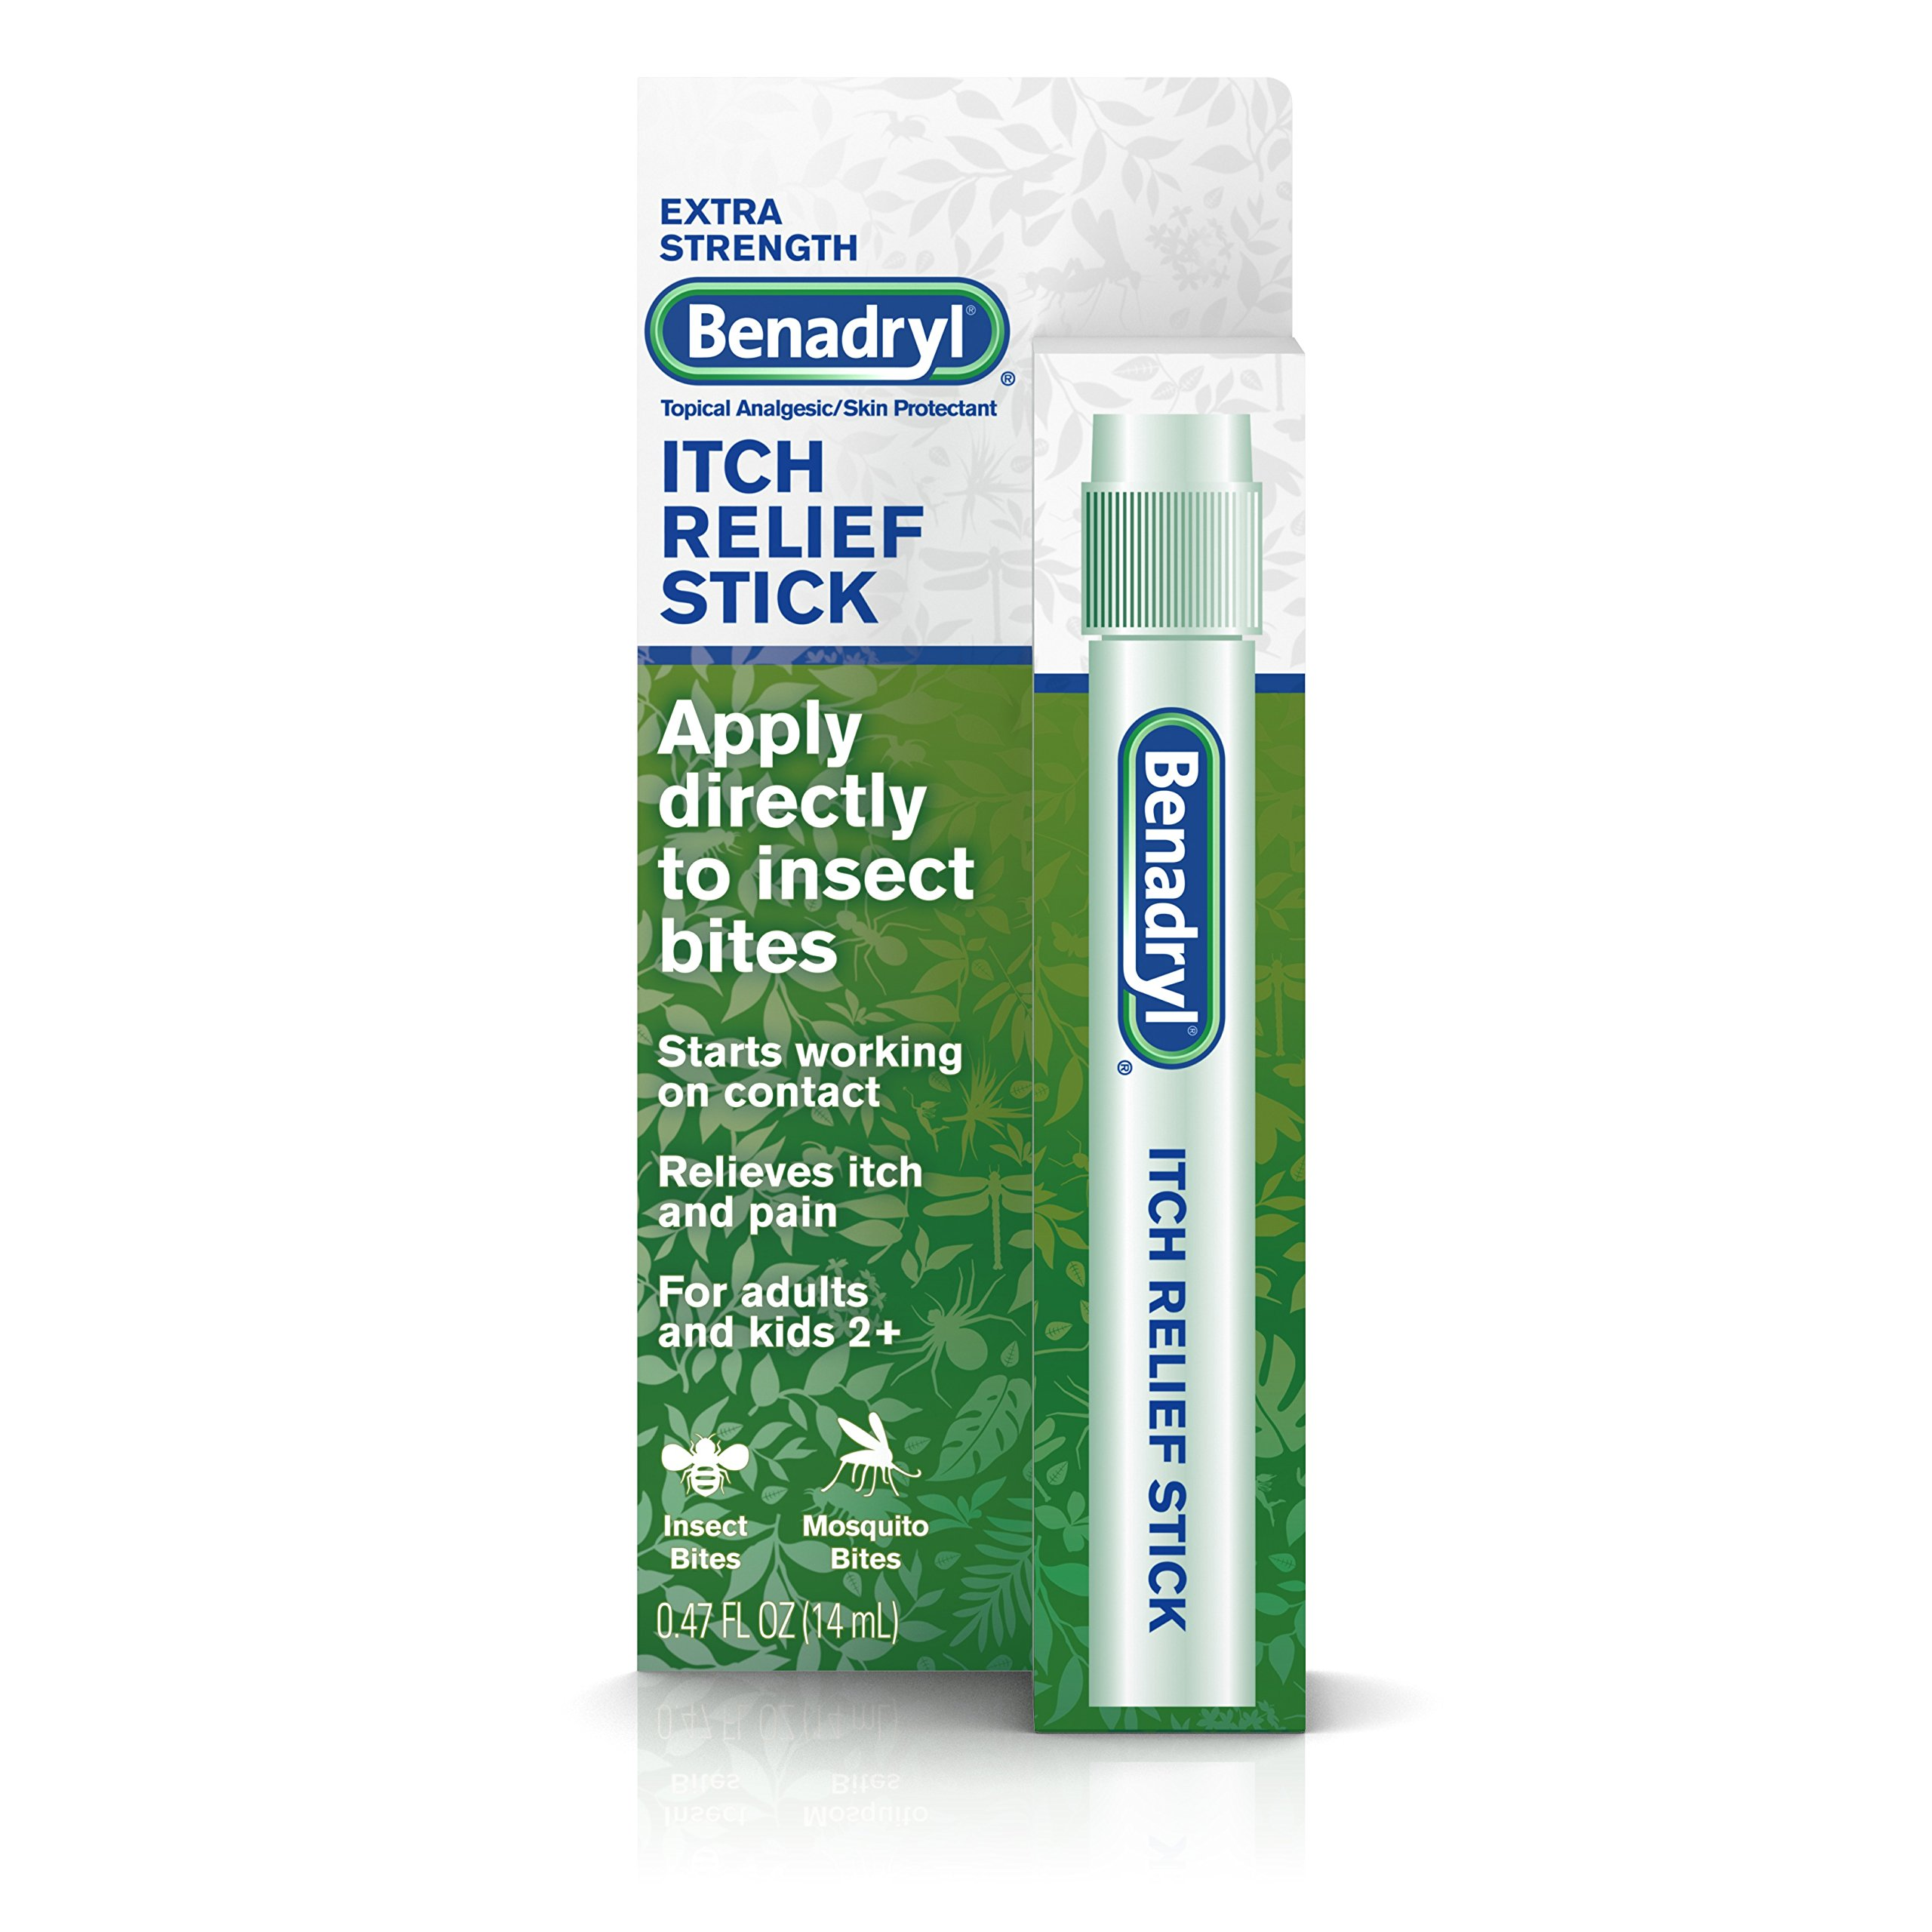 Benadryl Extra Strength Itch Relief Stick, Topical Analgesic, Travel Size.47 fl. oz (Pack of 3)